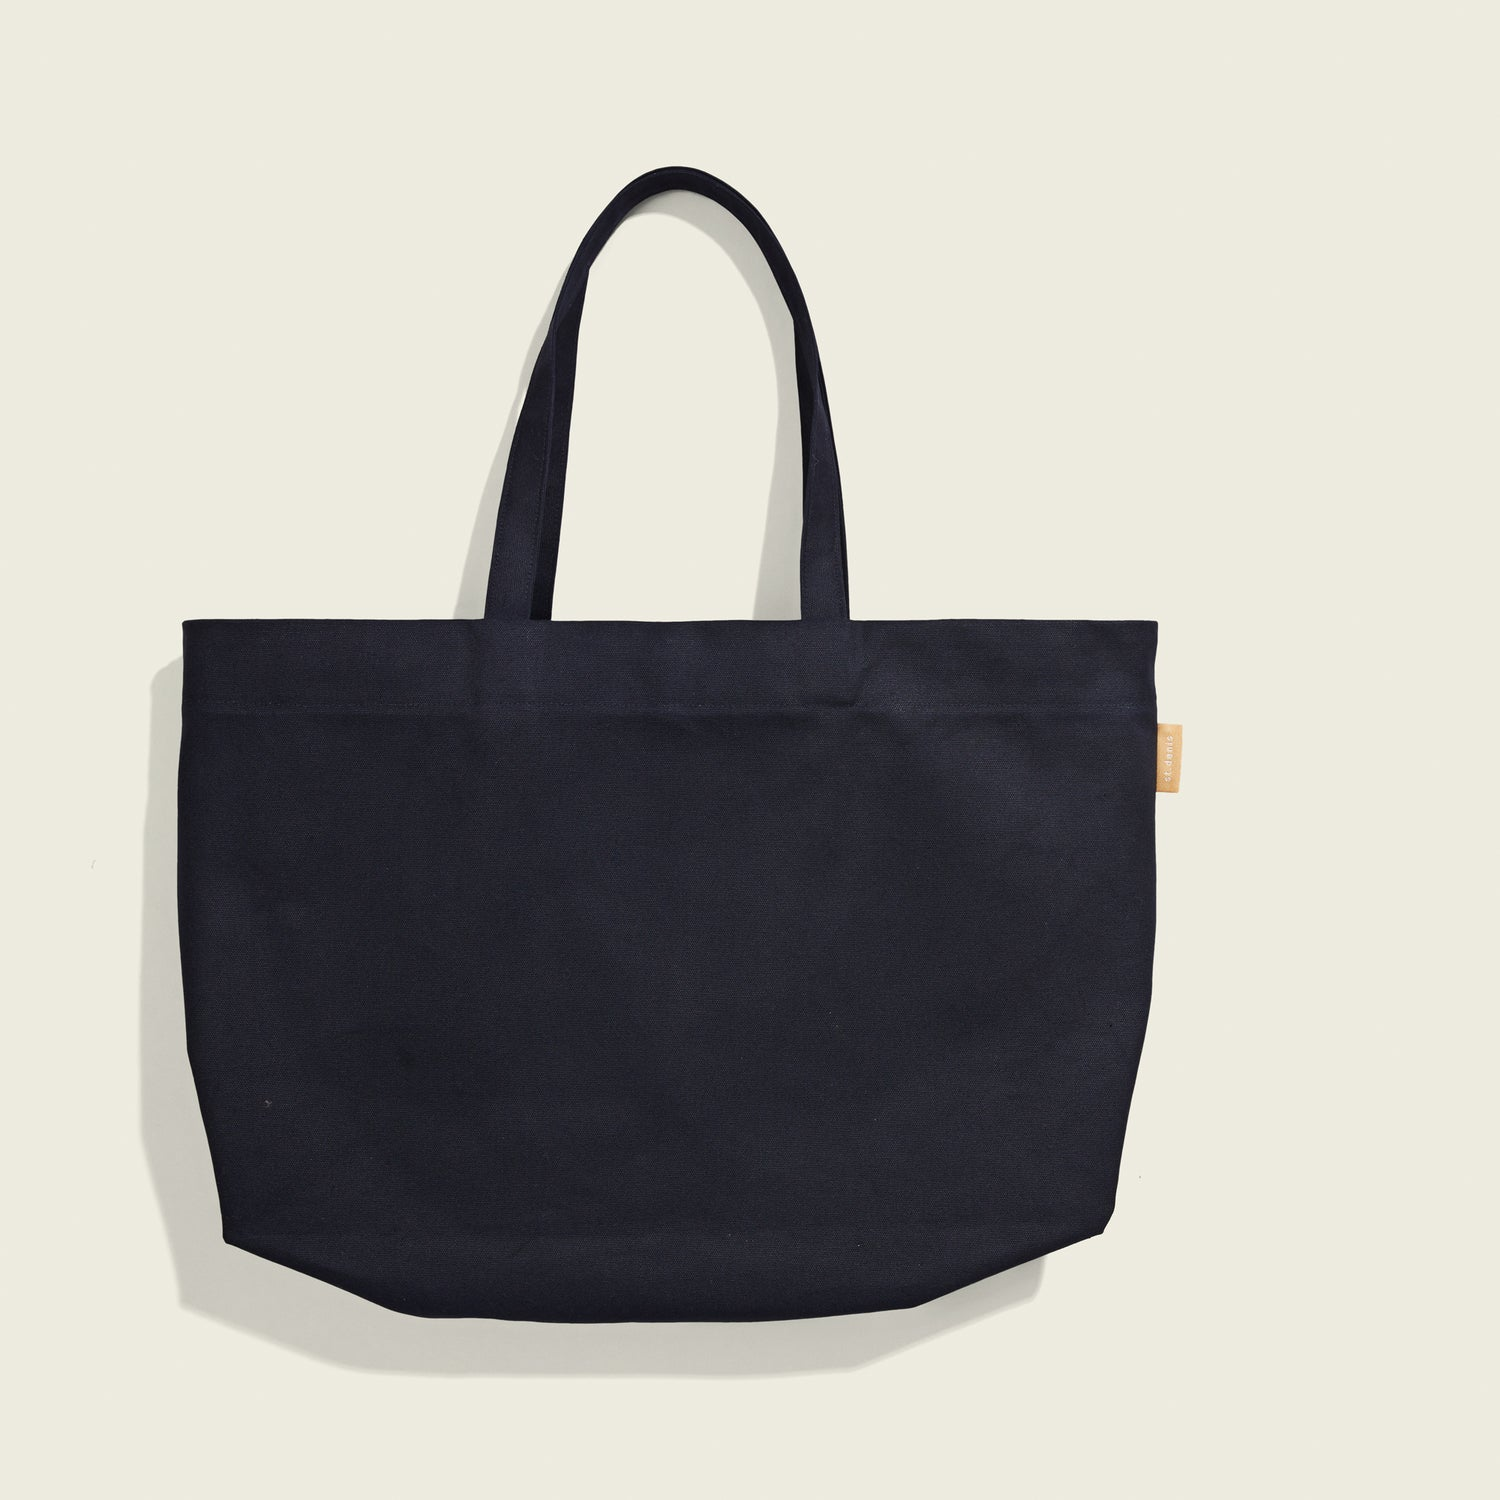 Sold out<br>Tote oversize Couleur noir